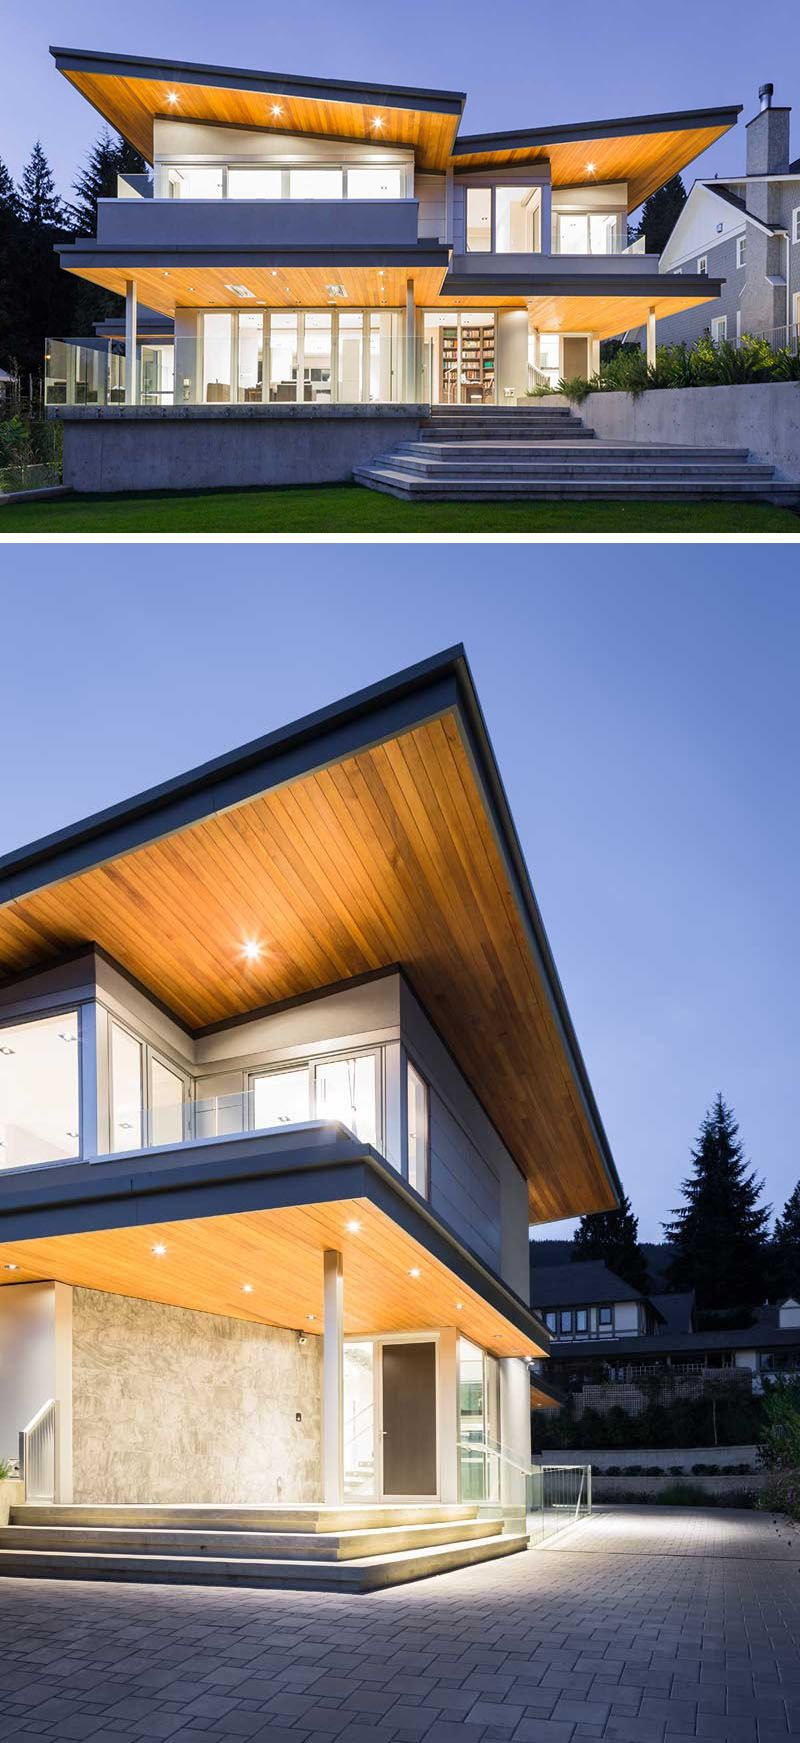 20 Awesome Examples Of Pacific Northwest Architecture // The Wood Butterfly  Roof Above The Concrete. Facade DesignHouse ...